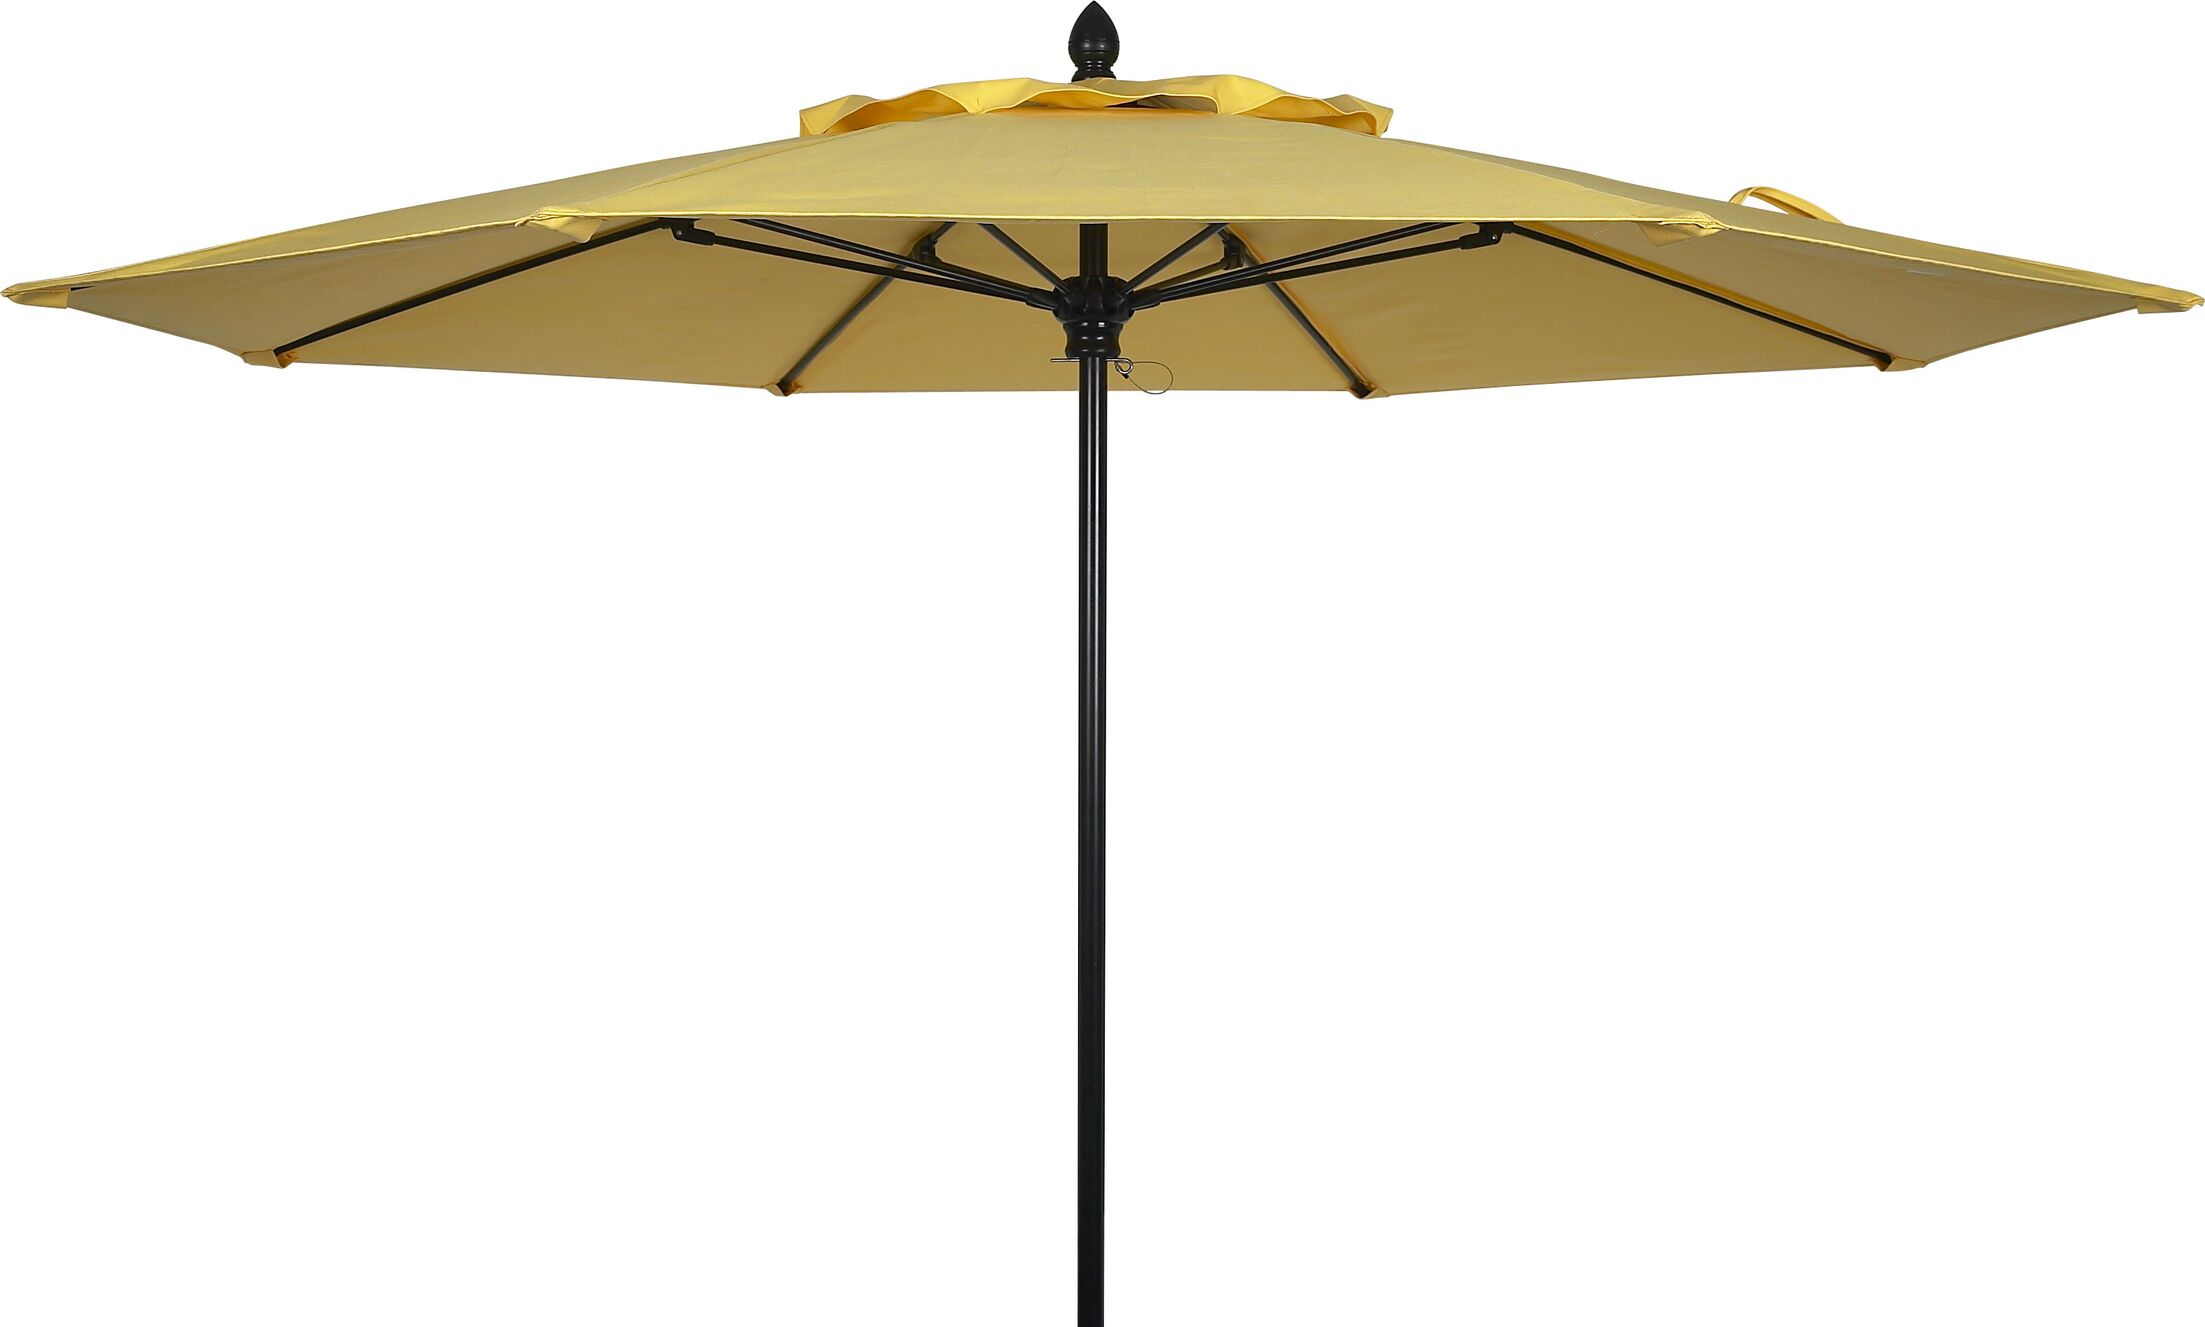 Prestige 8' Market Umbrella